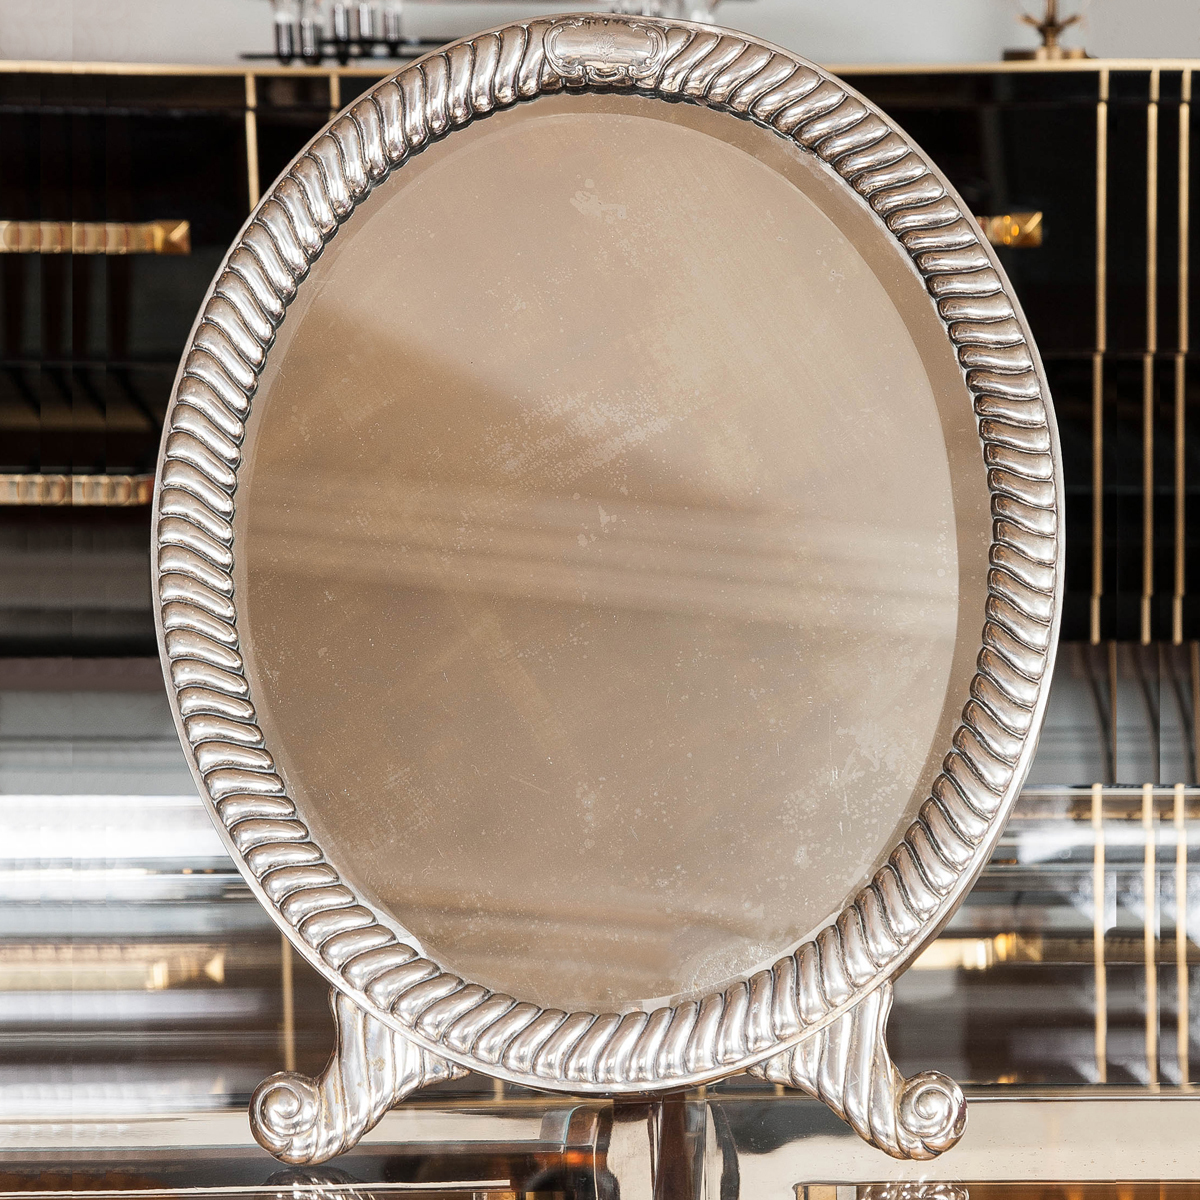 The image for Valerie Wade Mt548 1930S Oval Table Mirror 01